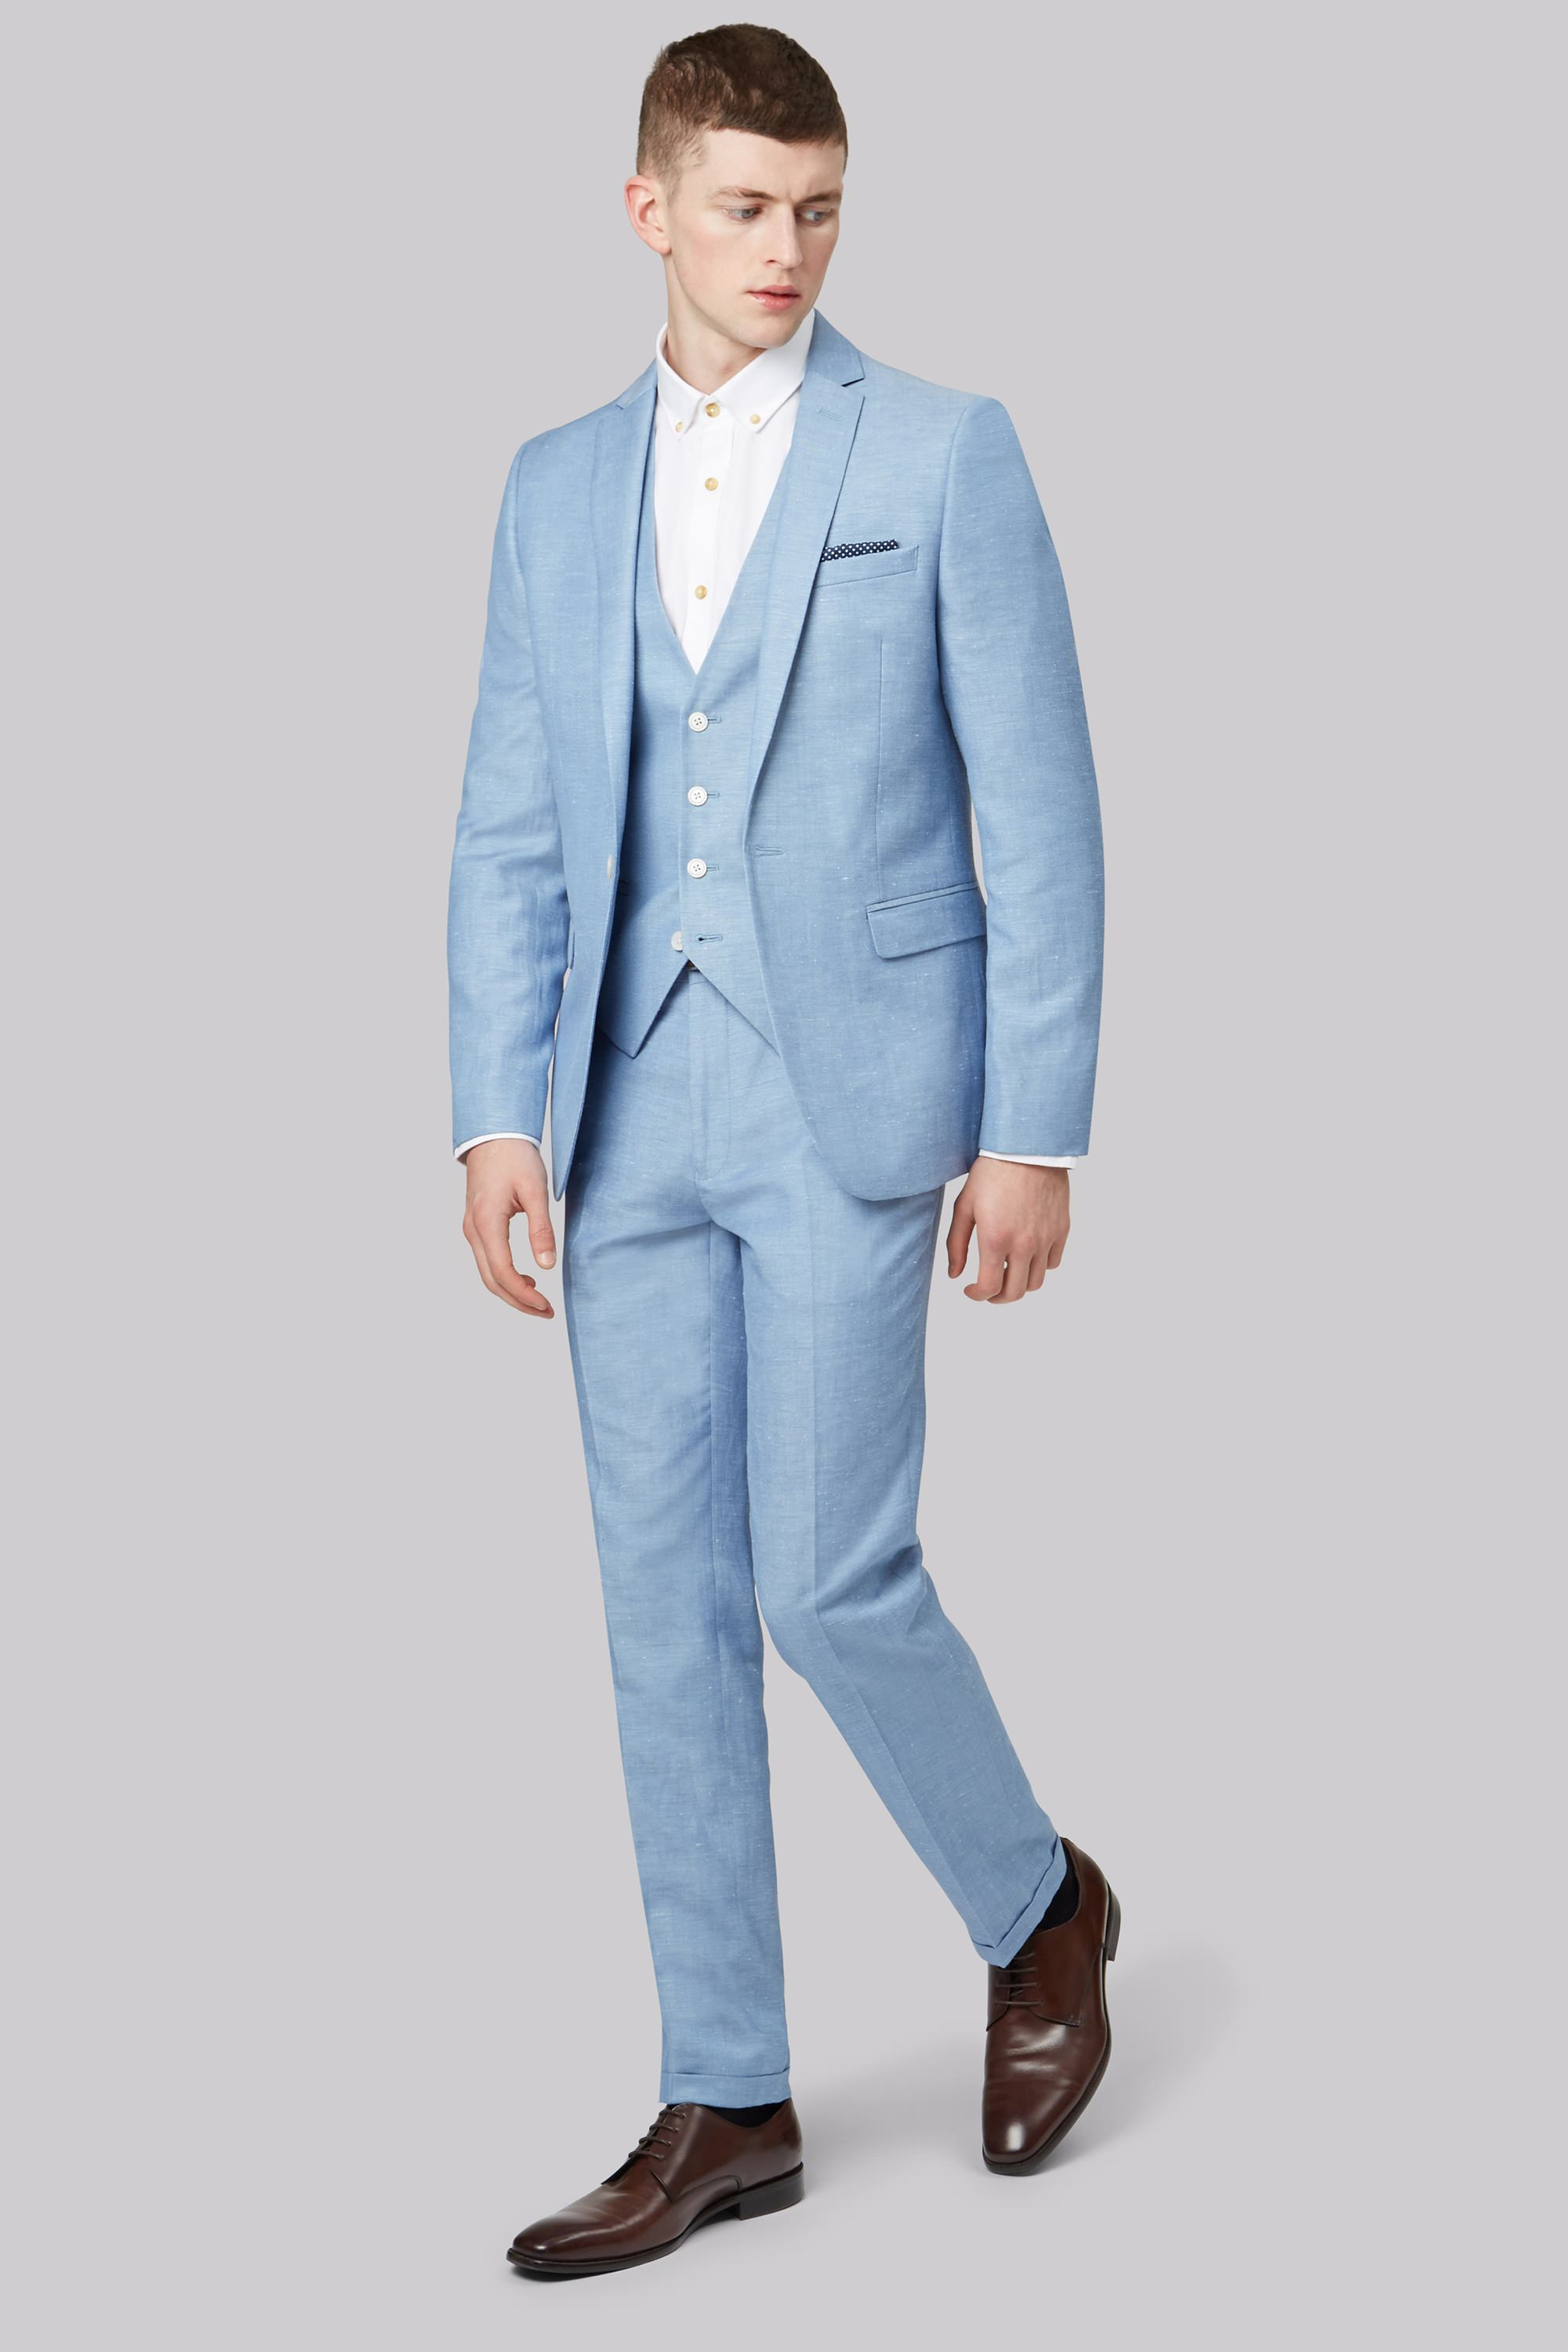 London Slim Fit Sky Blue Linen Jacket